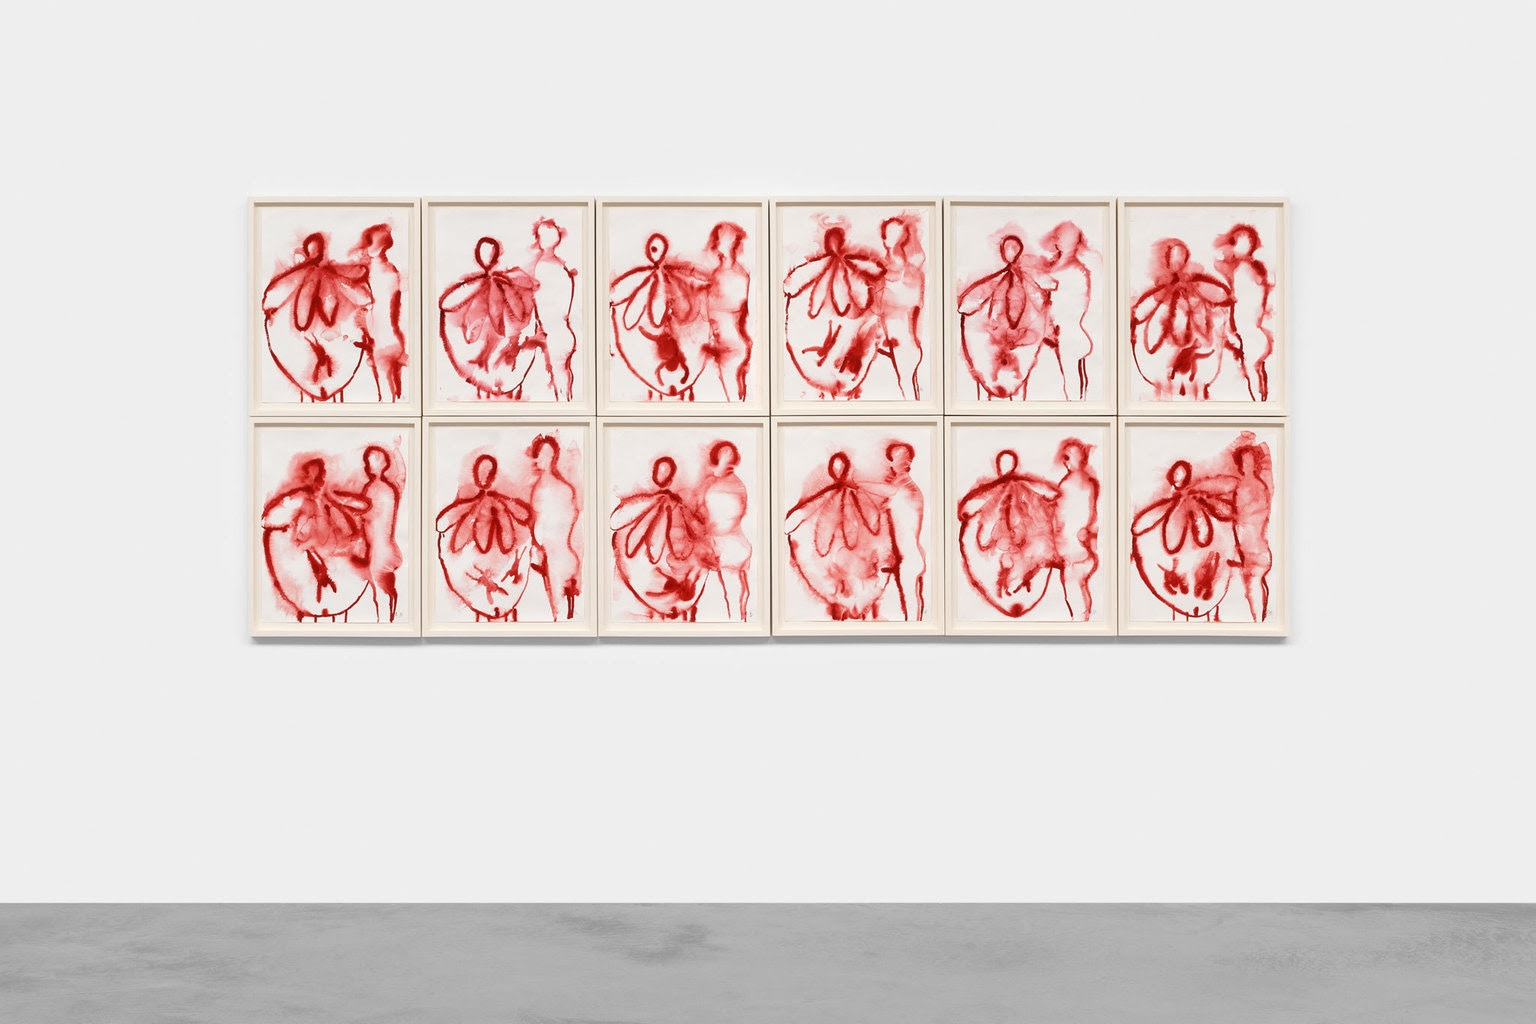 Louise Bourgeois, THE FAMILY, 2008